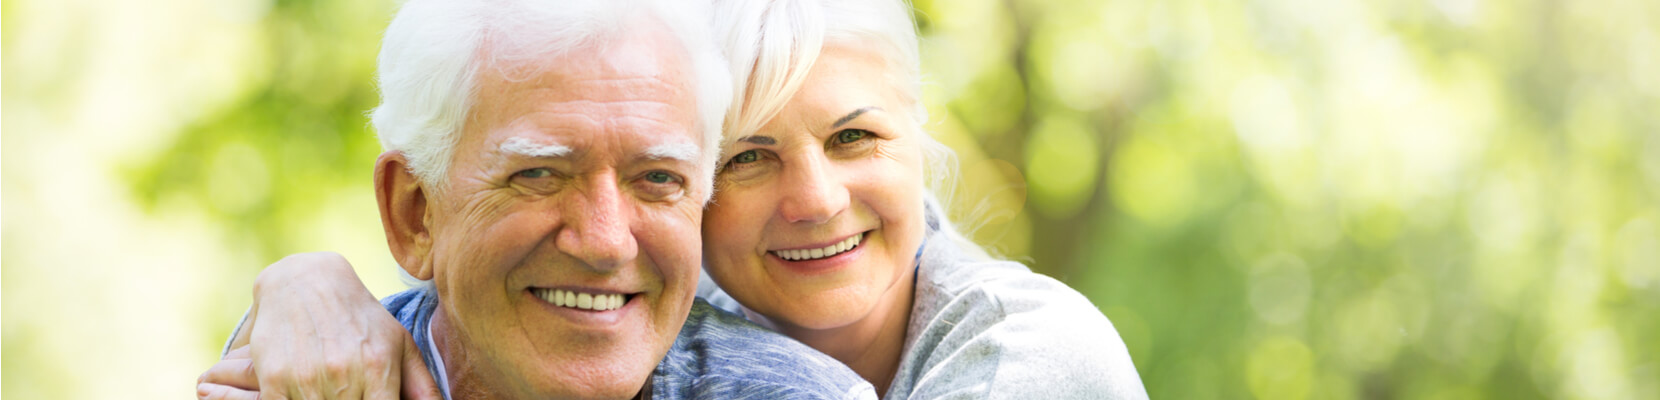 Senior Dating Online Services For Relationships